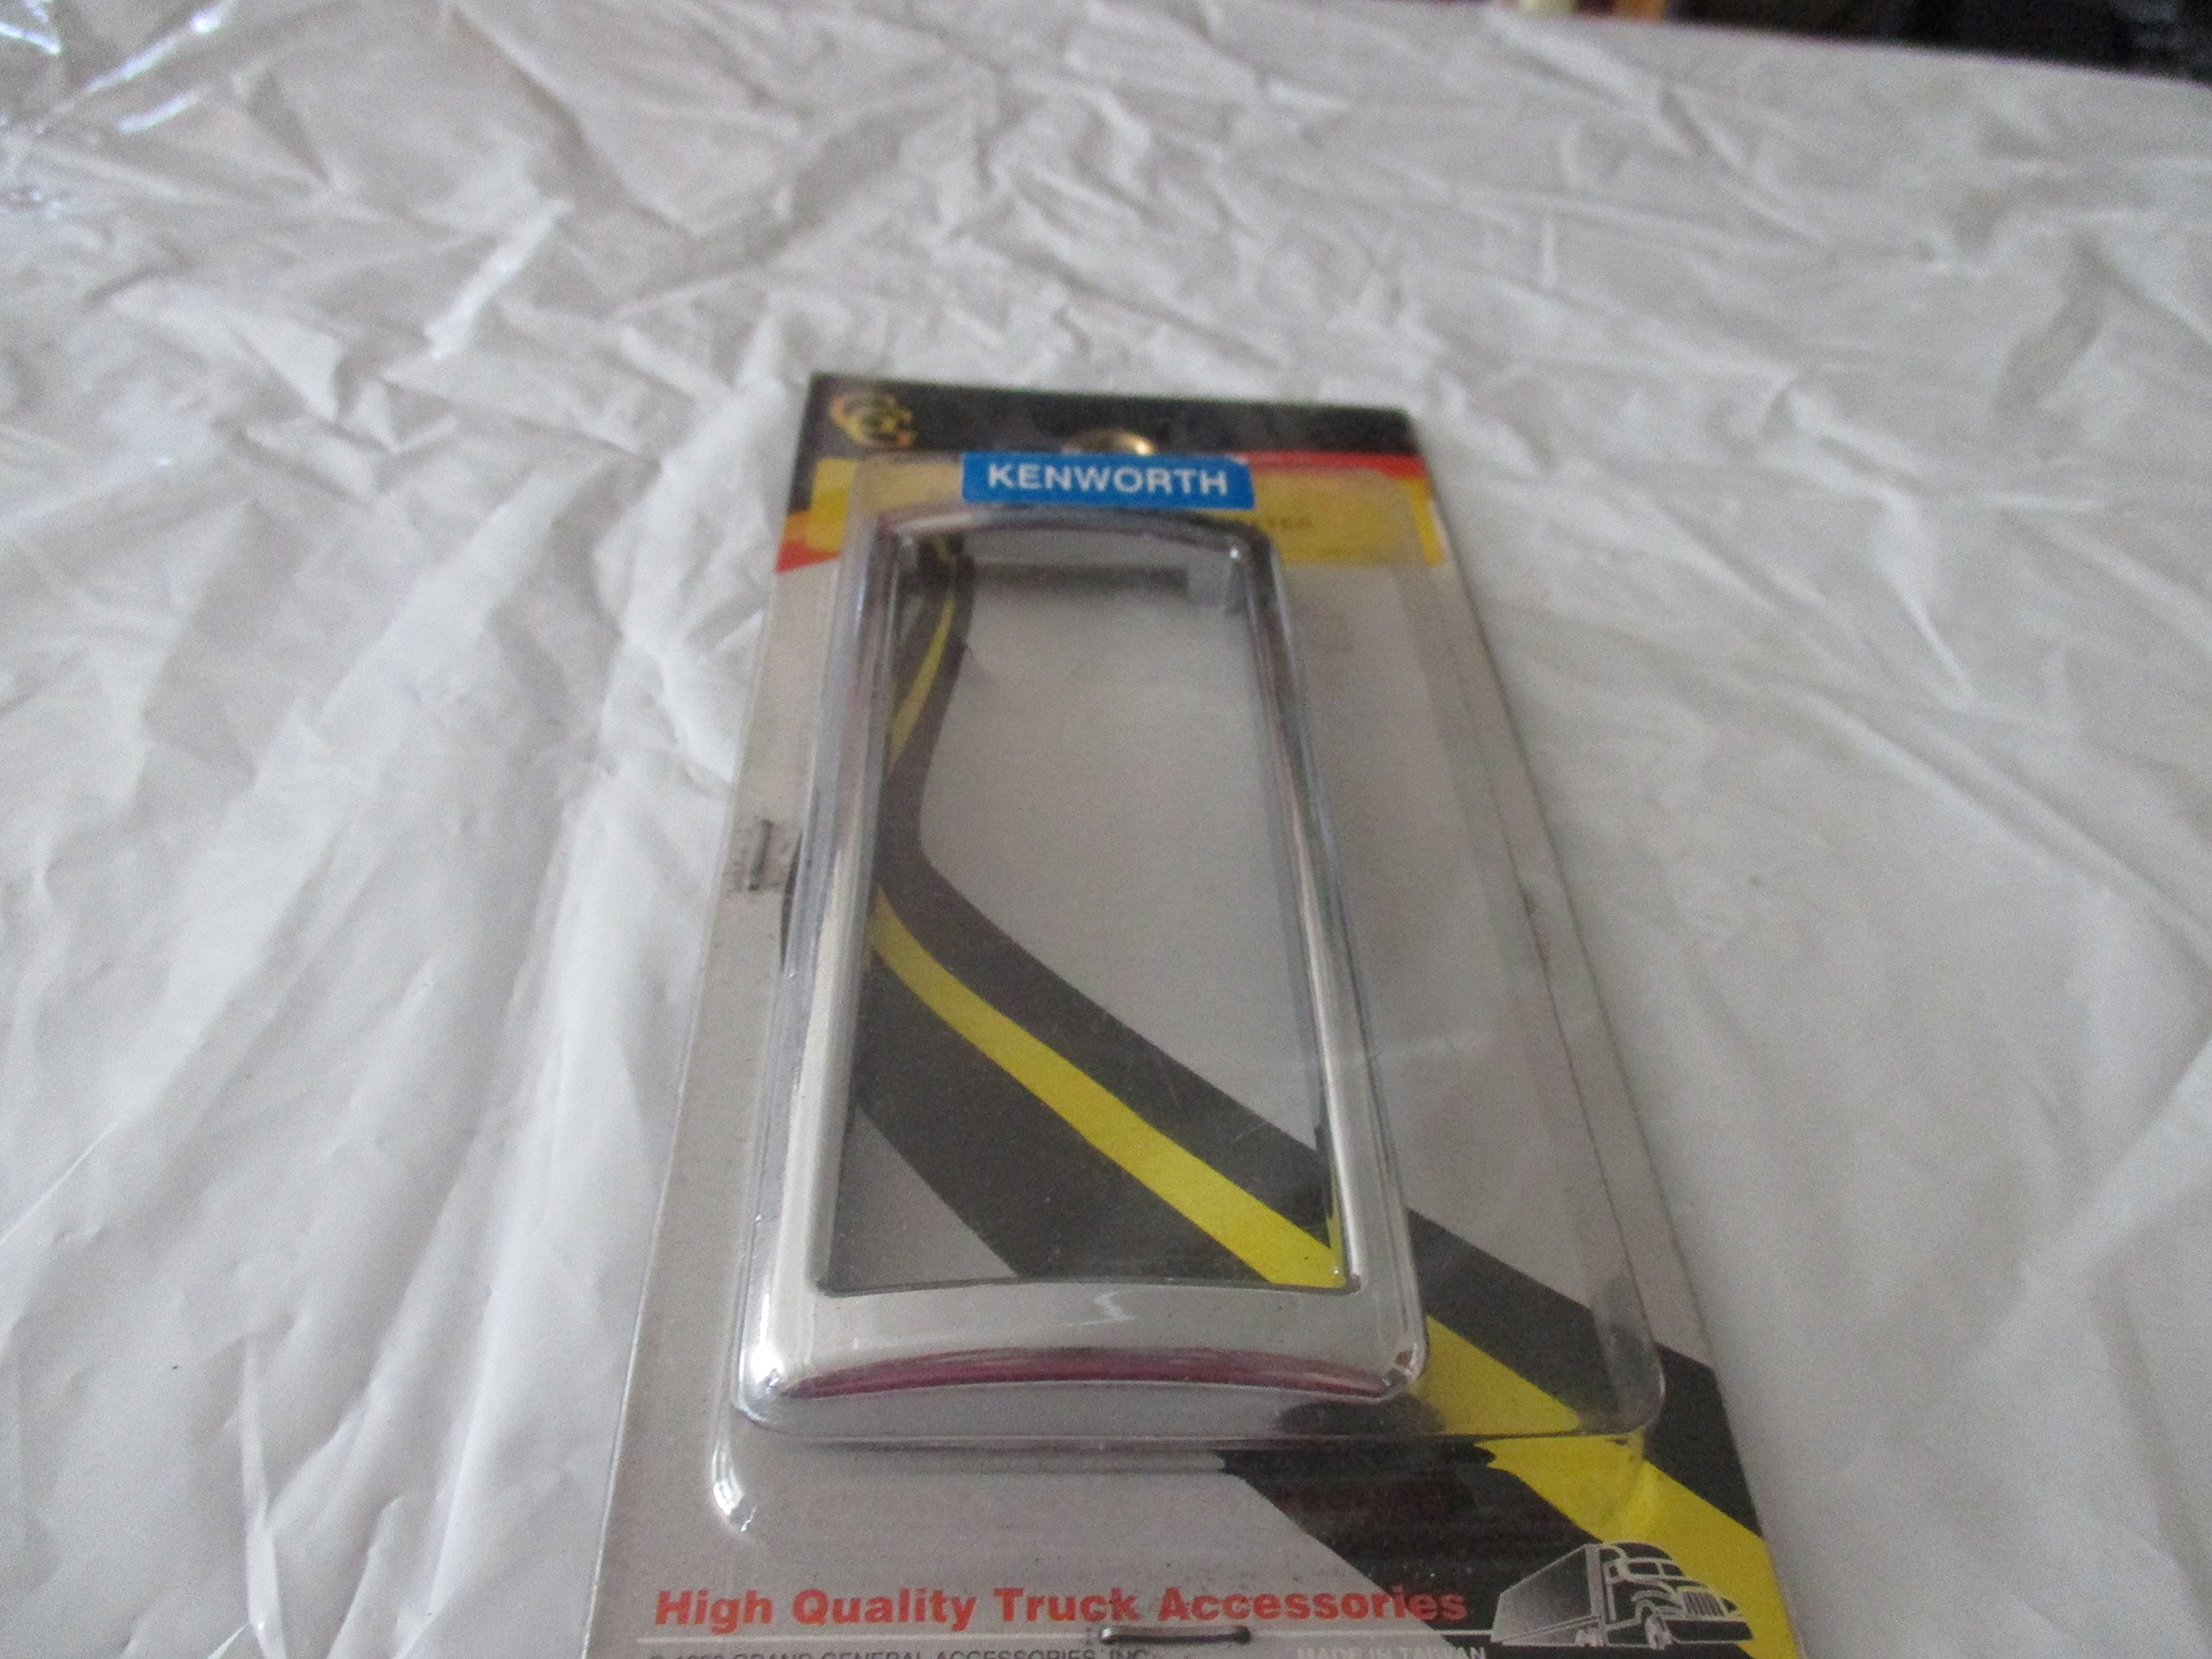 Grand General #68375 Chrome Plastic Ac/Heater Panel Bezel for Kenworth 2003 by Grand General